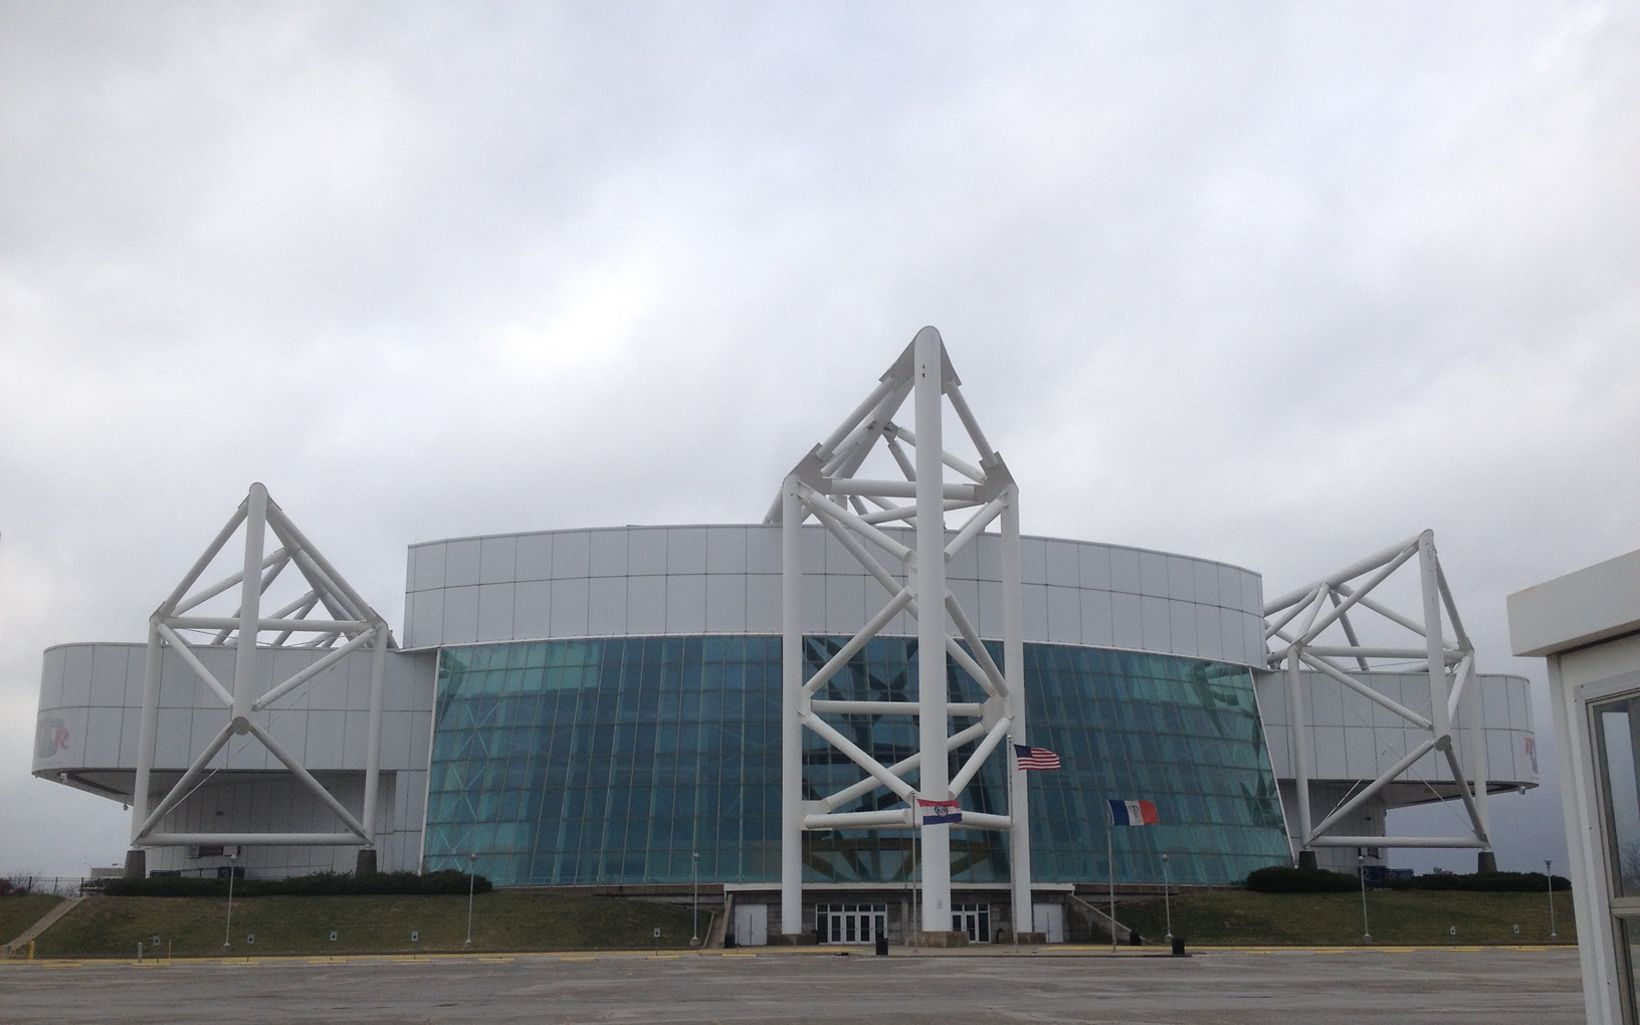 A large glass and white steel building.